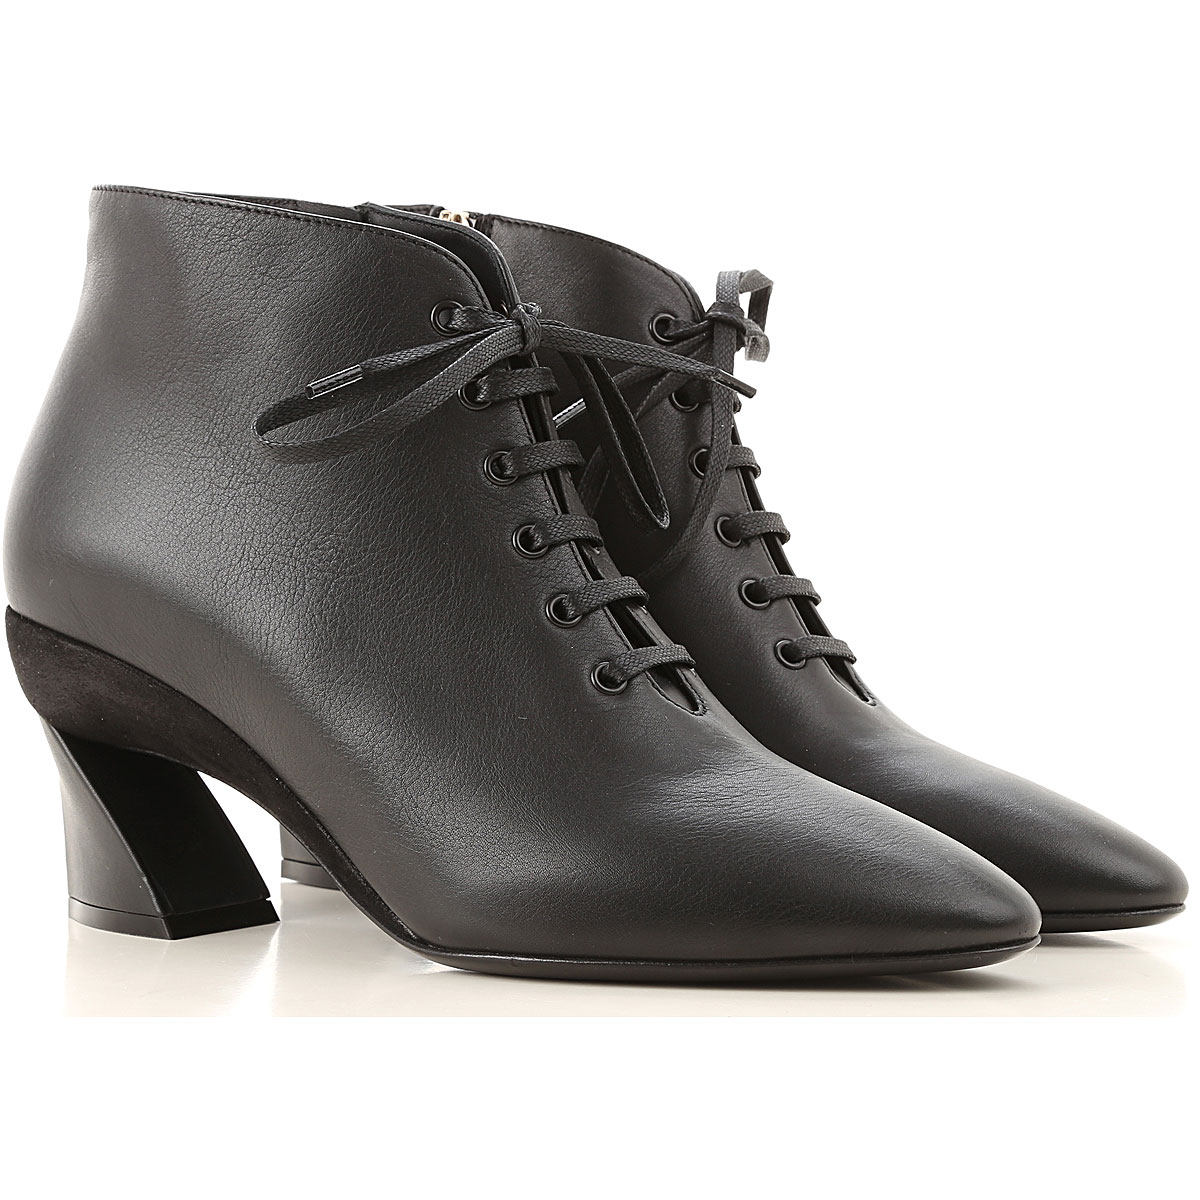 Salvatore Ferragamo Boots for Women, Booties On Sale, Black, Leather, 2019, 5 5.5 7 8.5 9